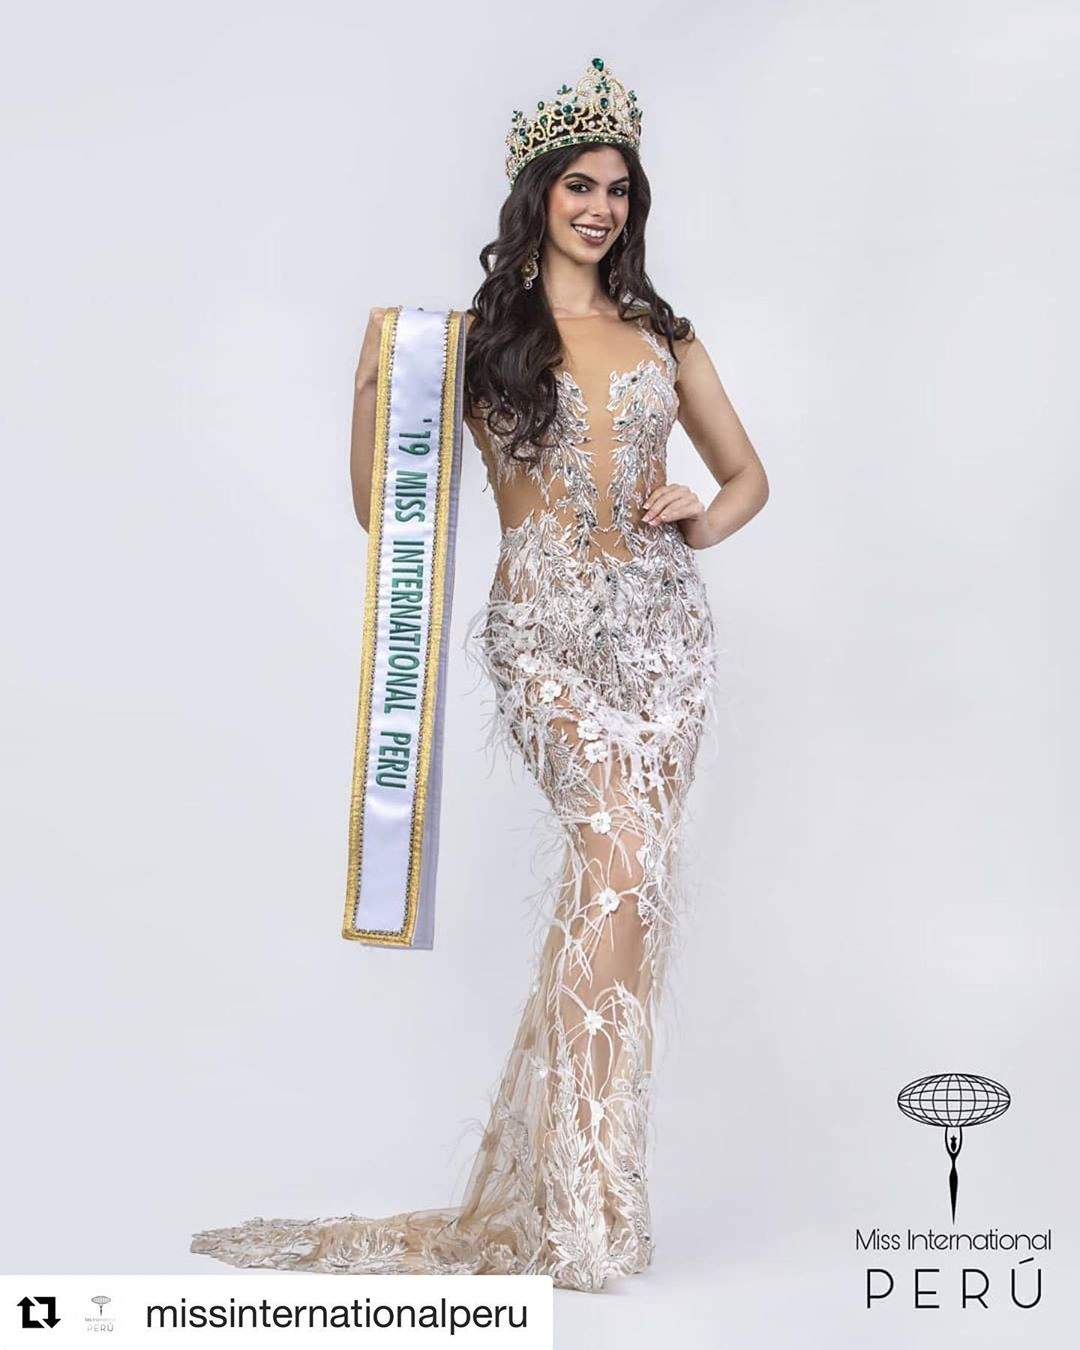 majo barbis, miss international peru 2019. 69647710